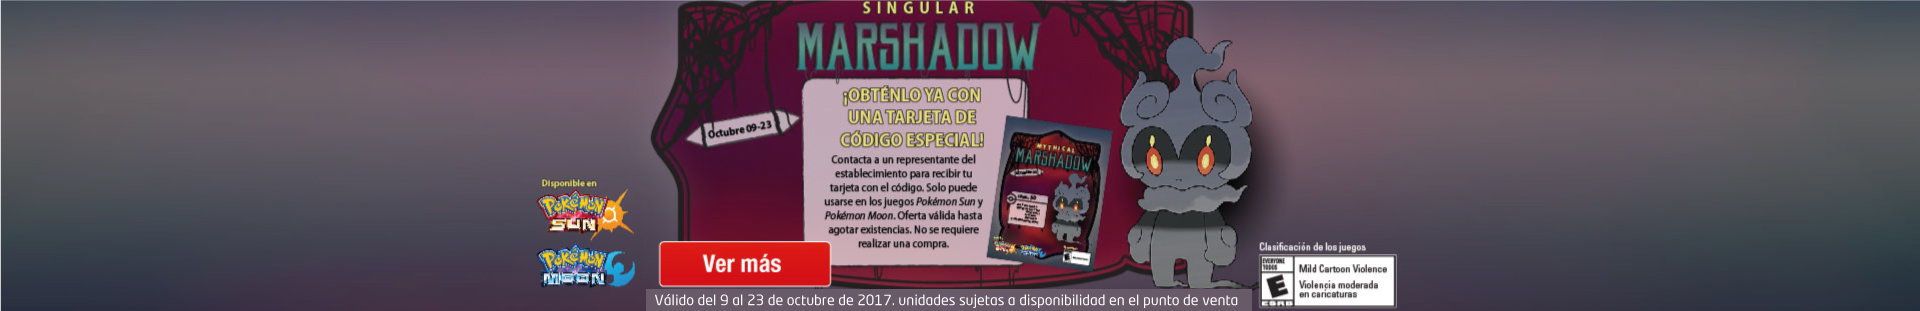 CAT-AK-KT-16-videojuegos-codigomarshadow-cat-oct9-23